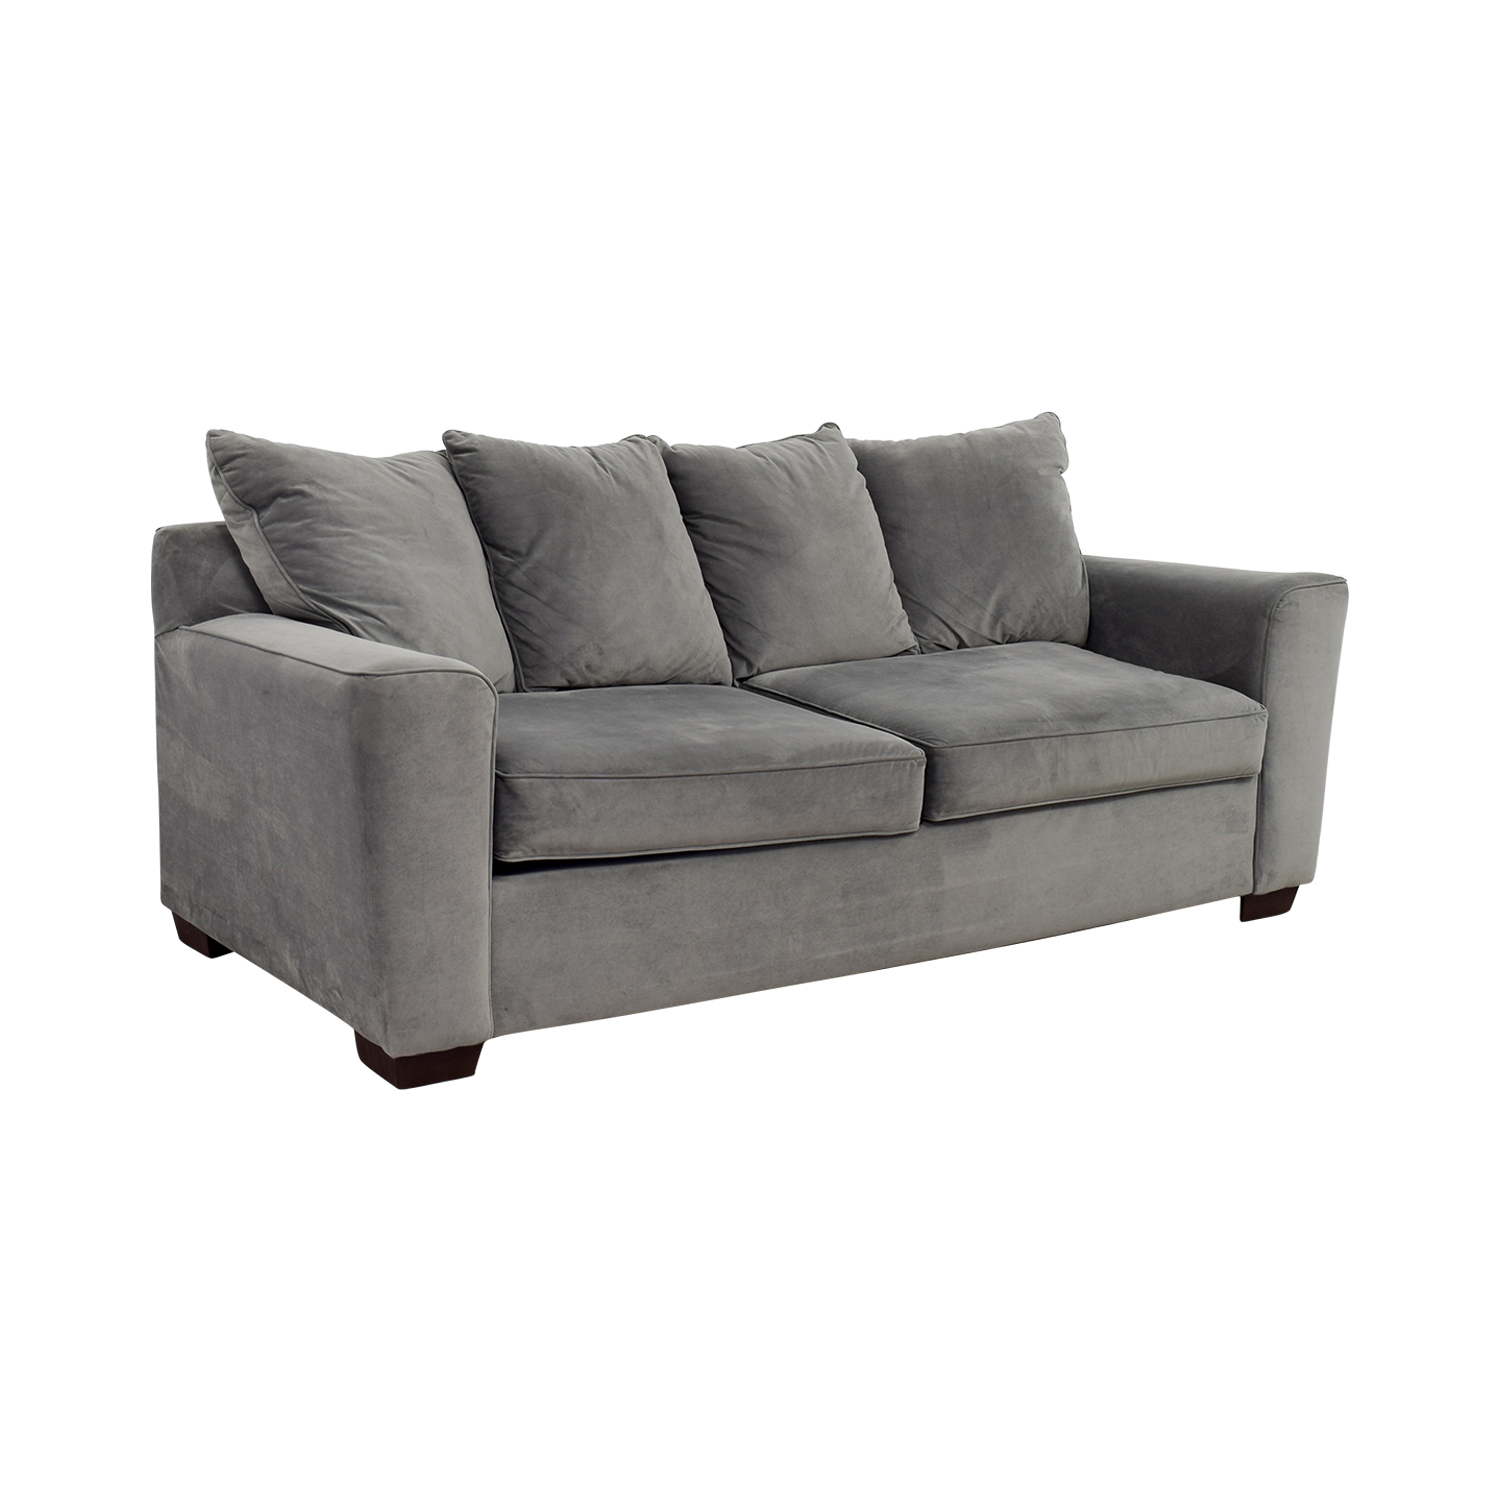 jennifer convertible sofas on sale transitional leather reclining sofa 49 off